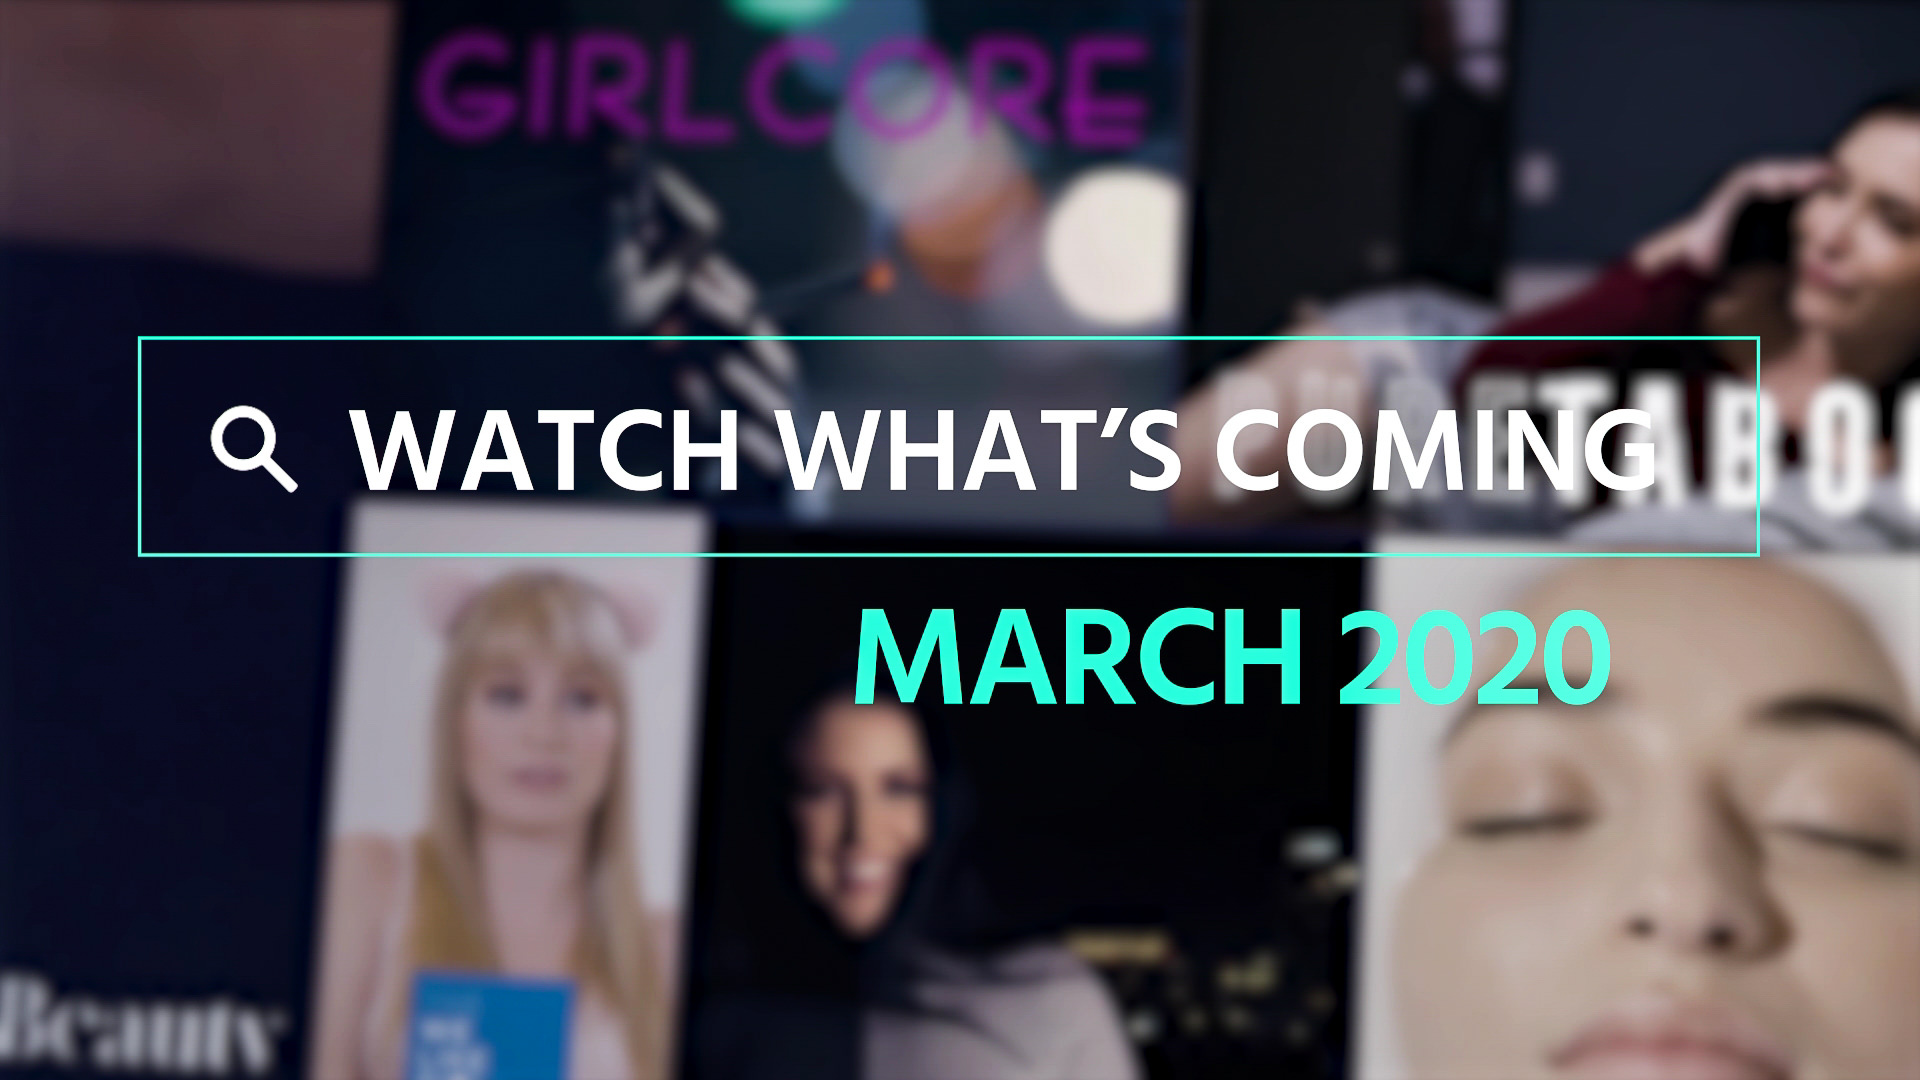 Watch What's Coming | March 2020 1